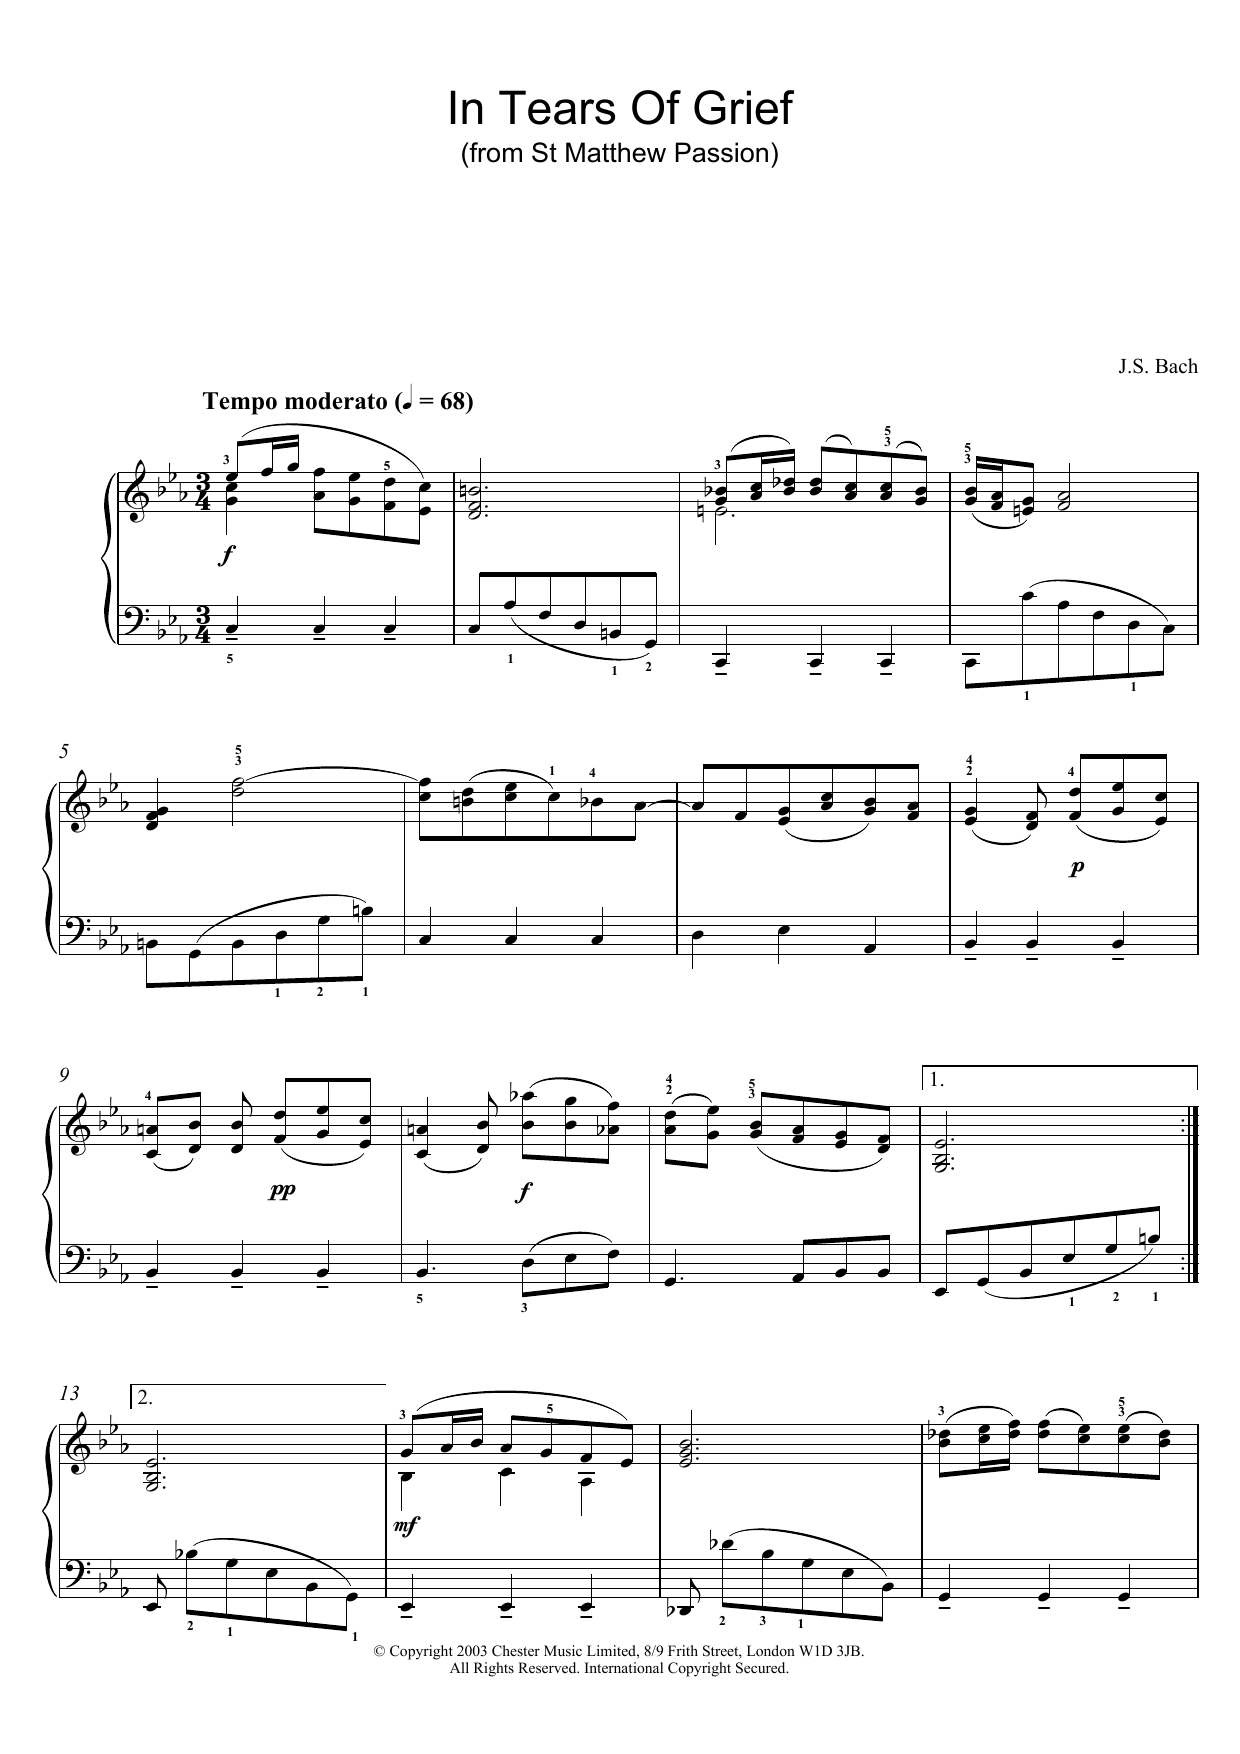 In Tears Of Grief From St Matthew Passion Sheet Music